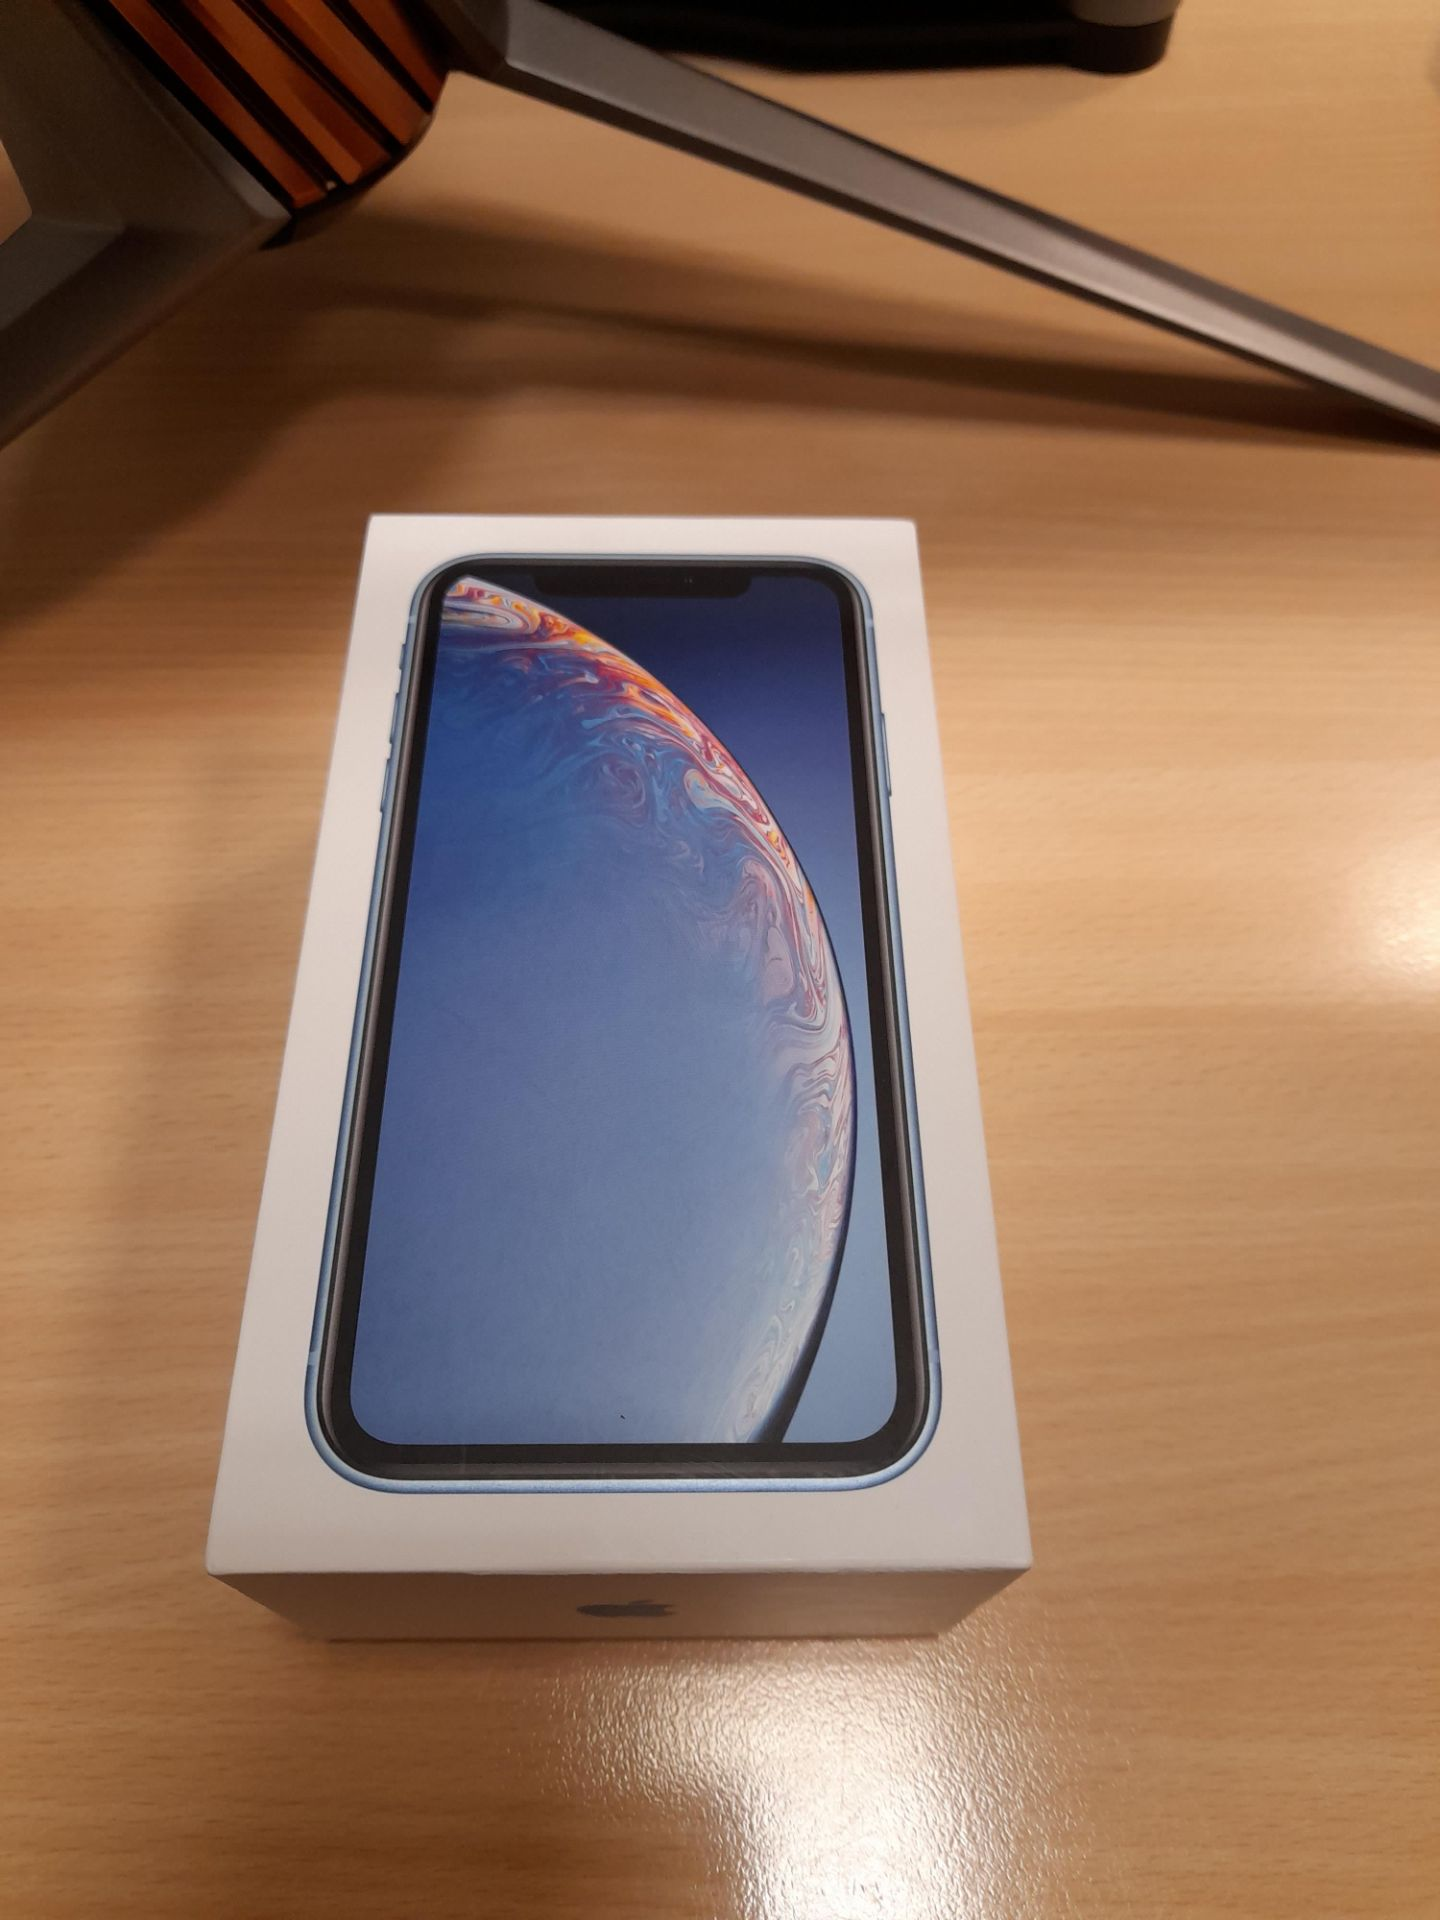 Apple iPhone, Model XR, Blue, 128GB, No Charger